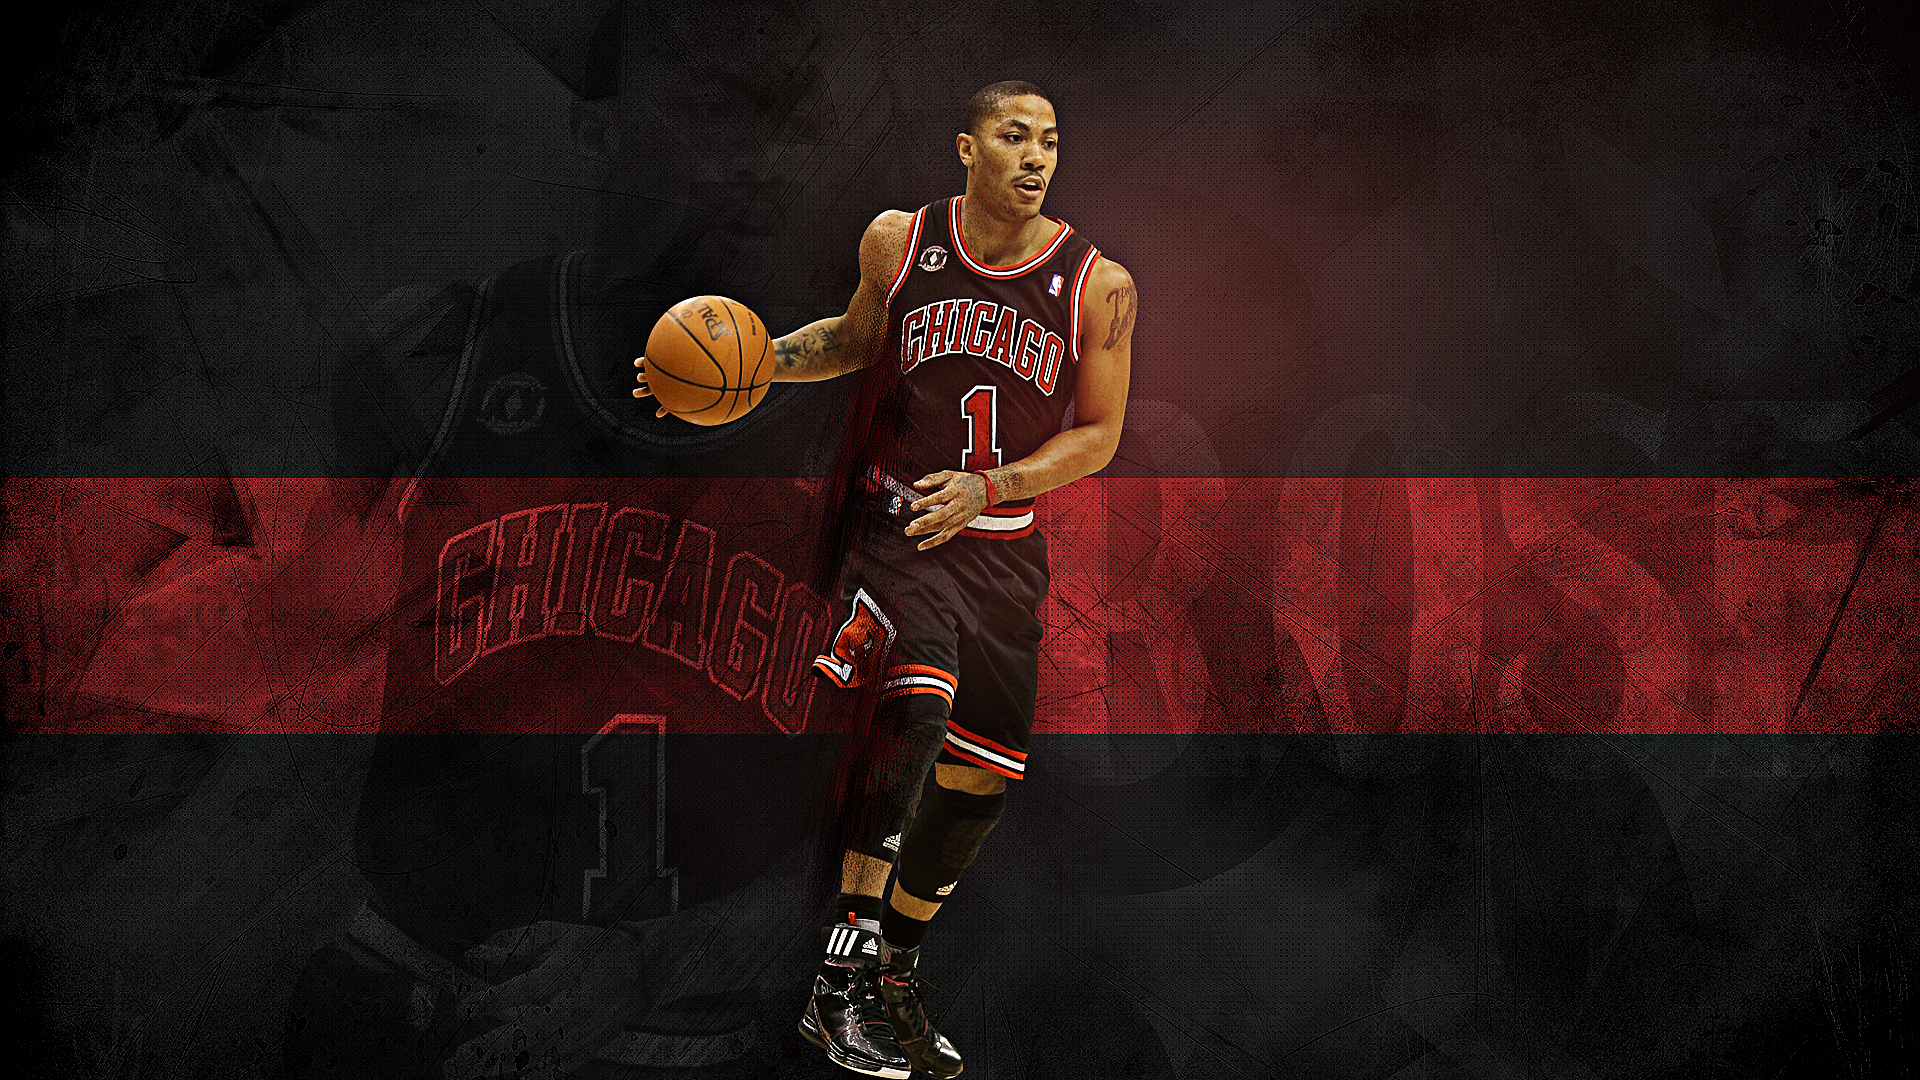 Derrick rose wallpapers high resolution and quality download - Derrick rose cavs wallpaper ...